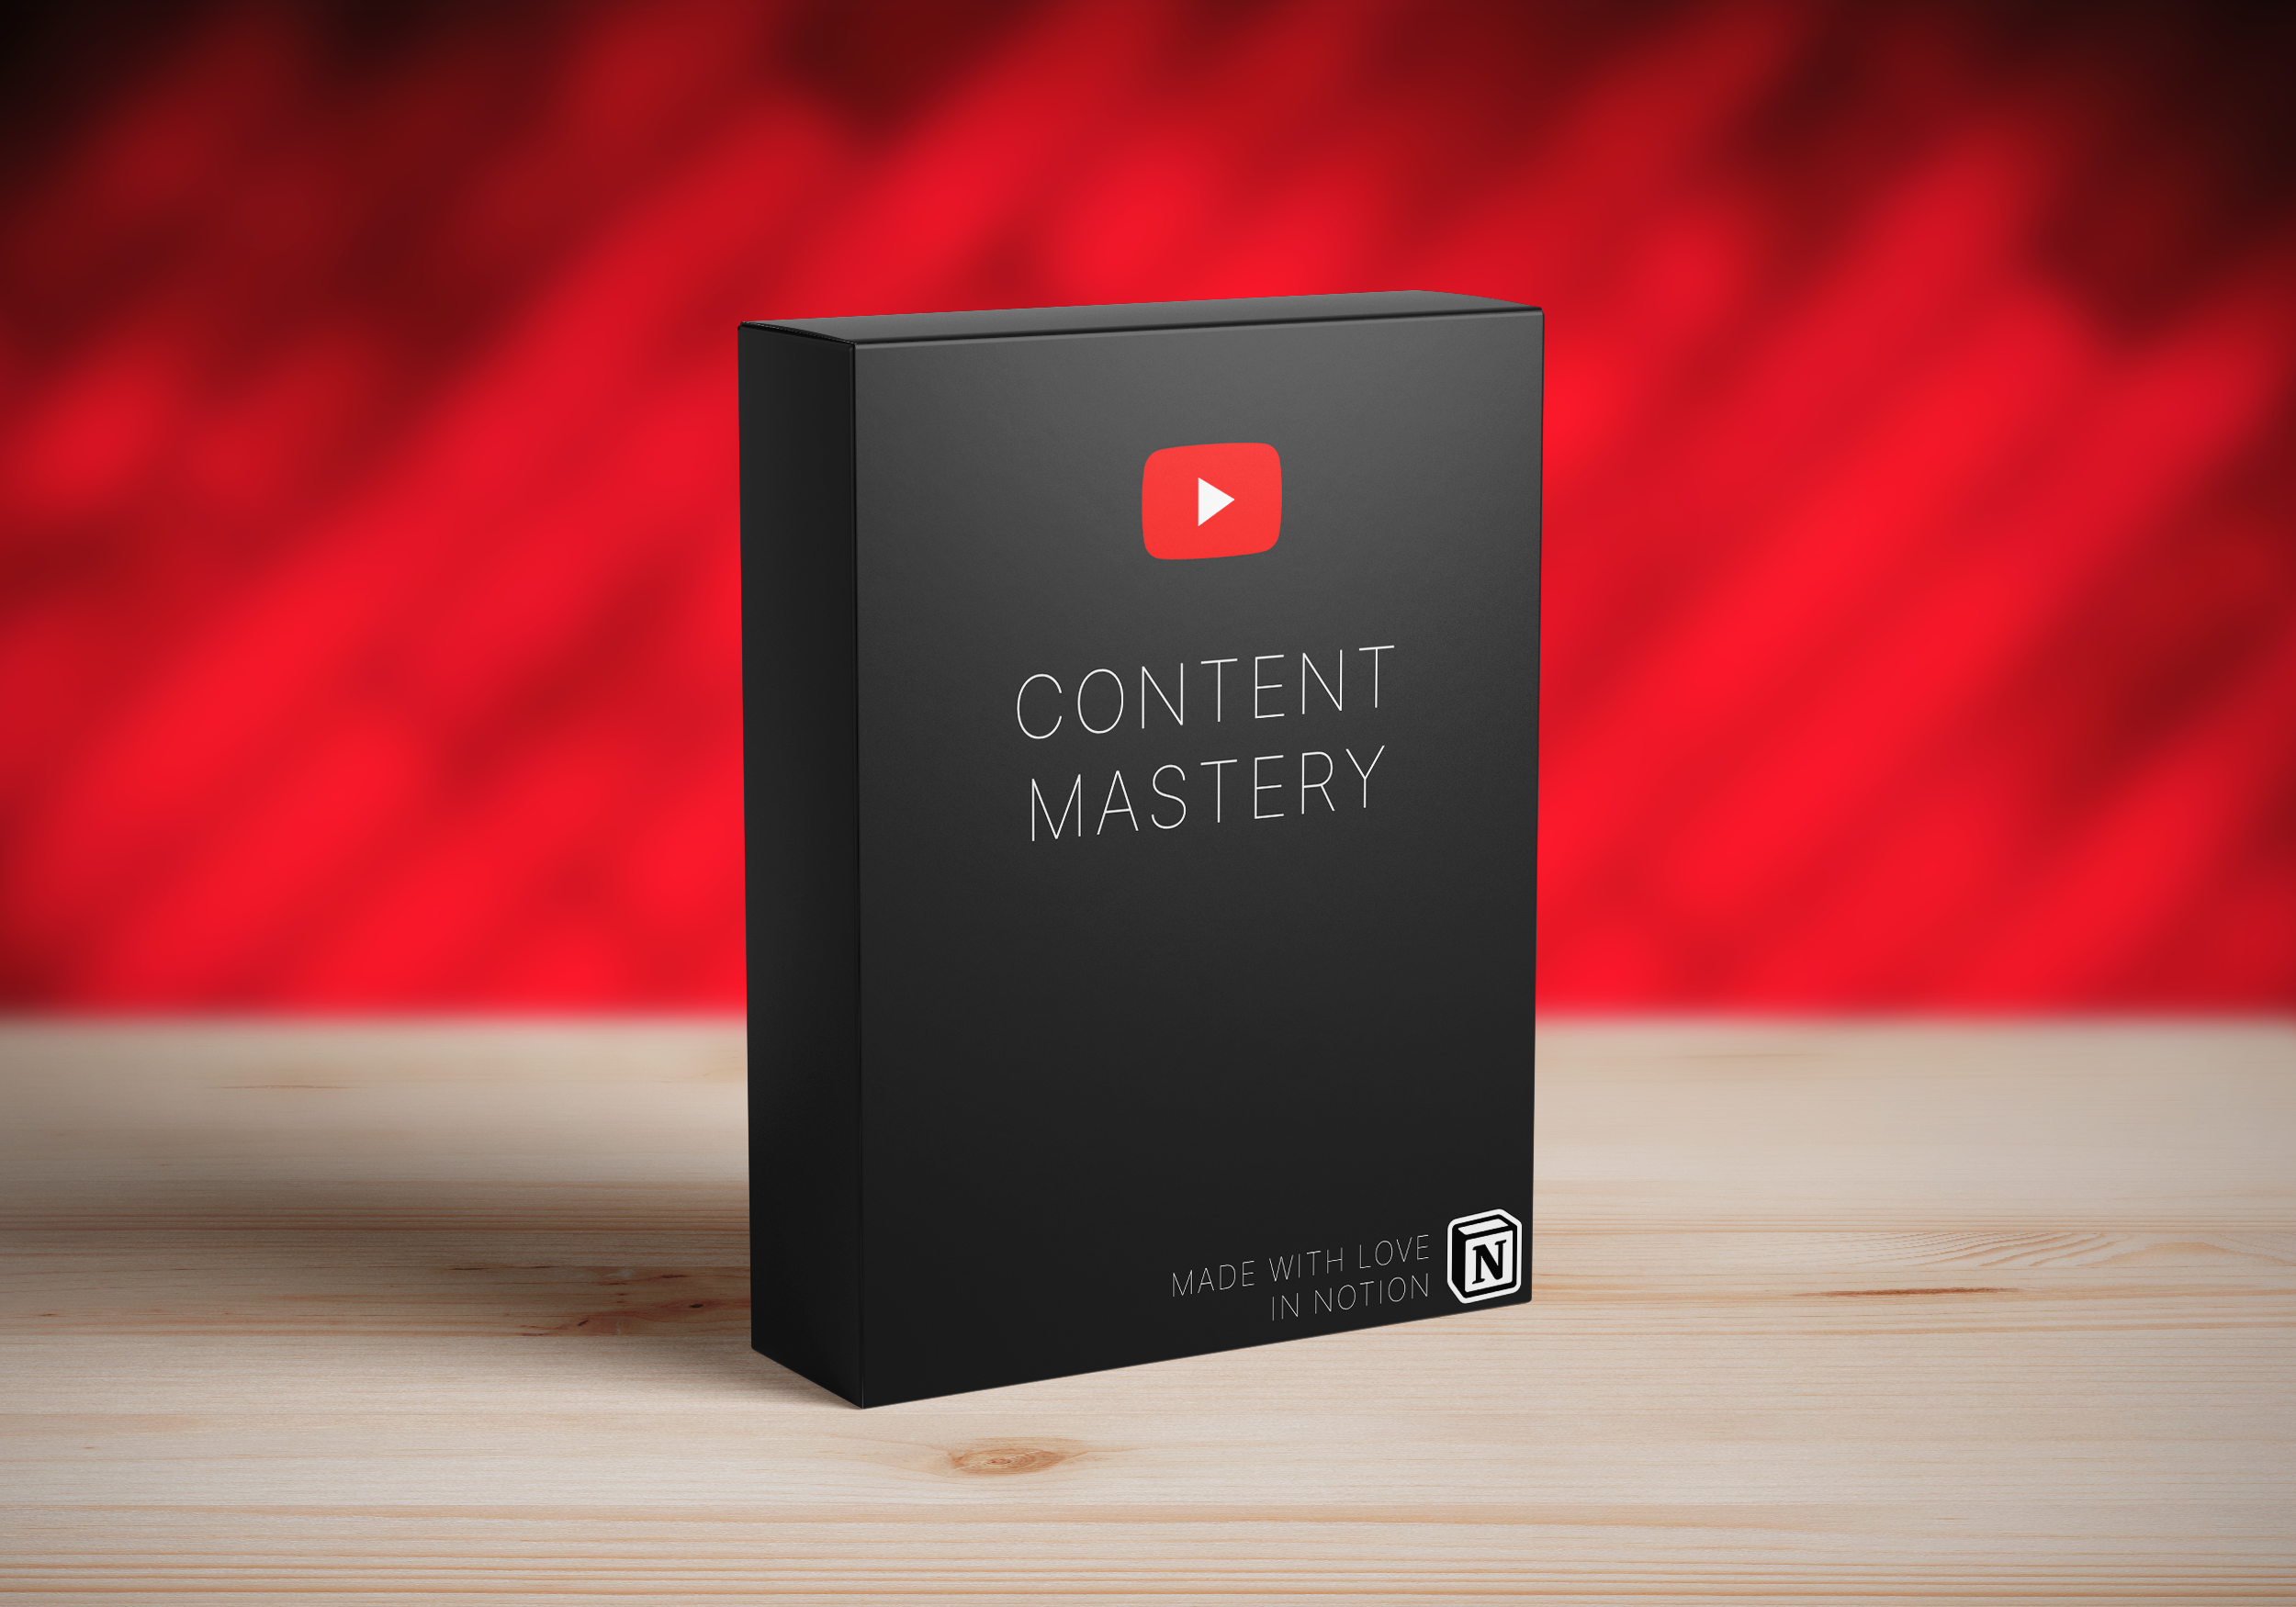 Content Mastery